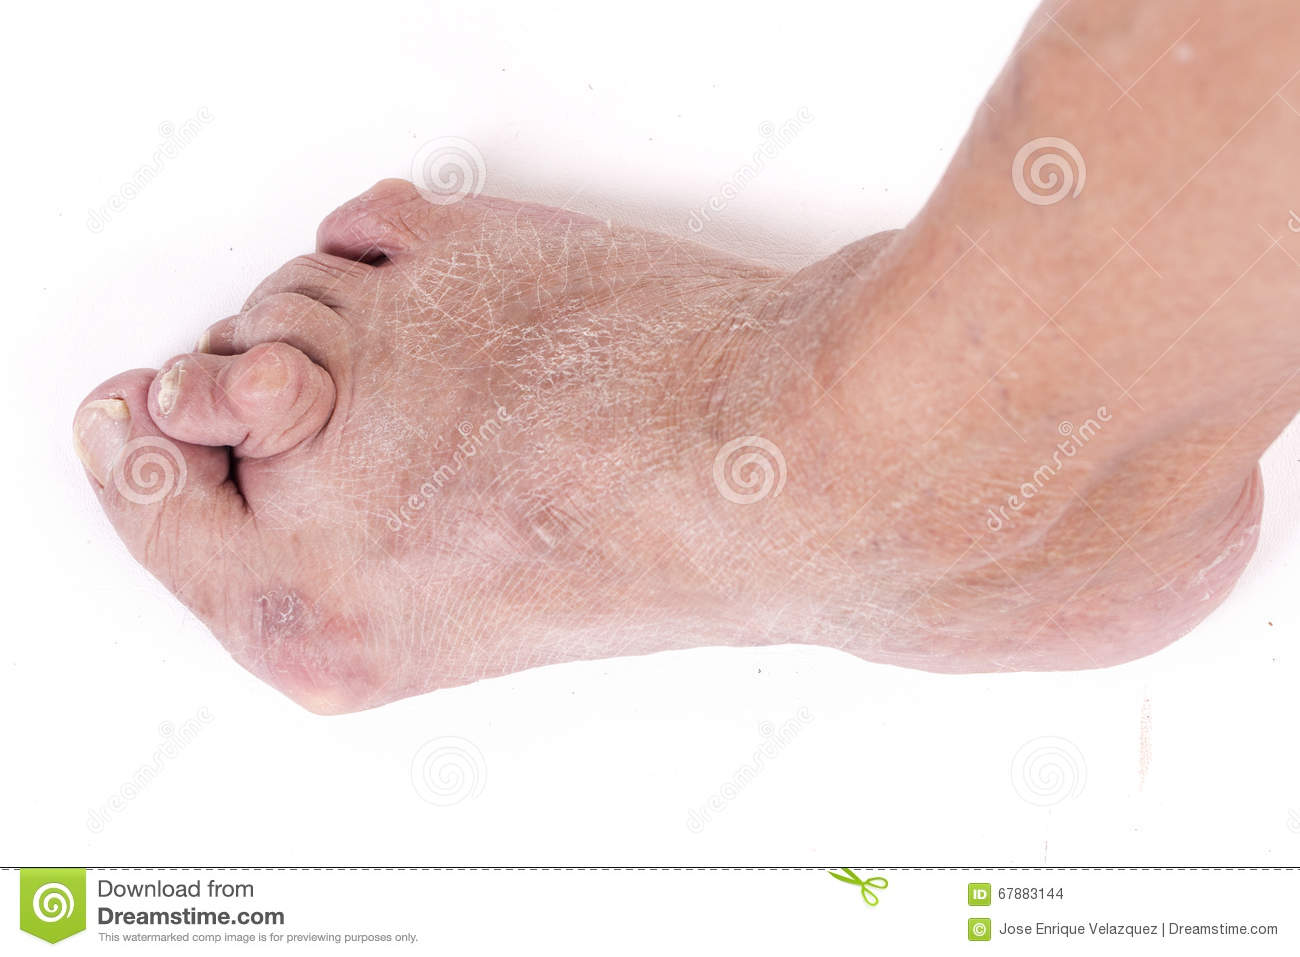 Valgus do abductus de Hallux